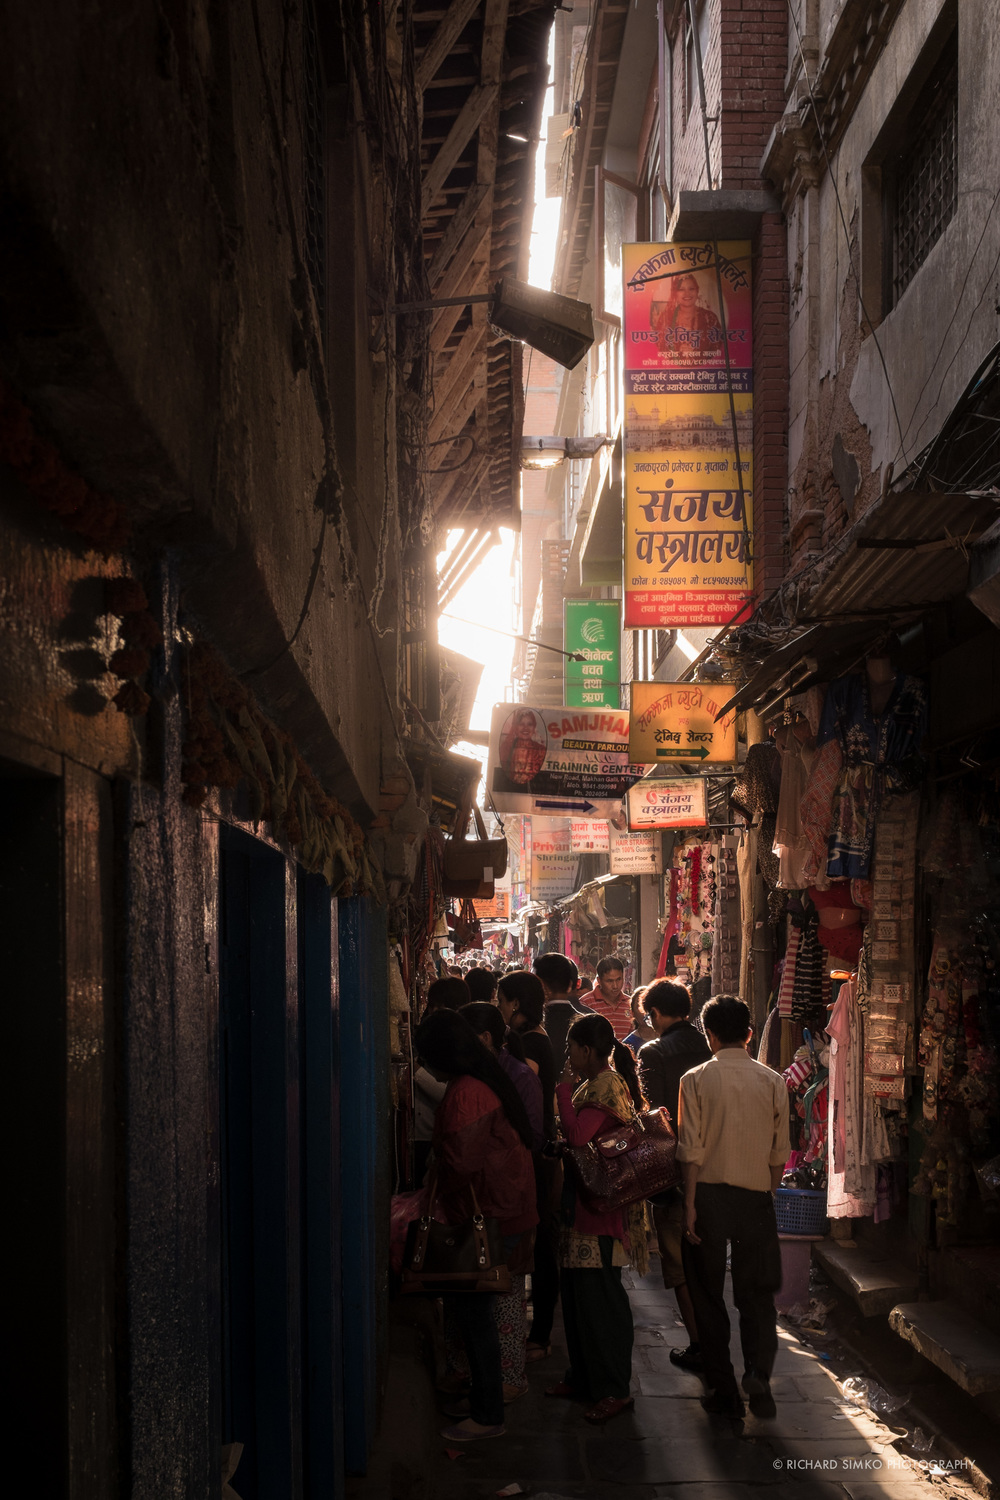 Narrow streets of Thamel can be crowded but colourful in setting sun